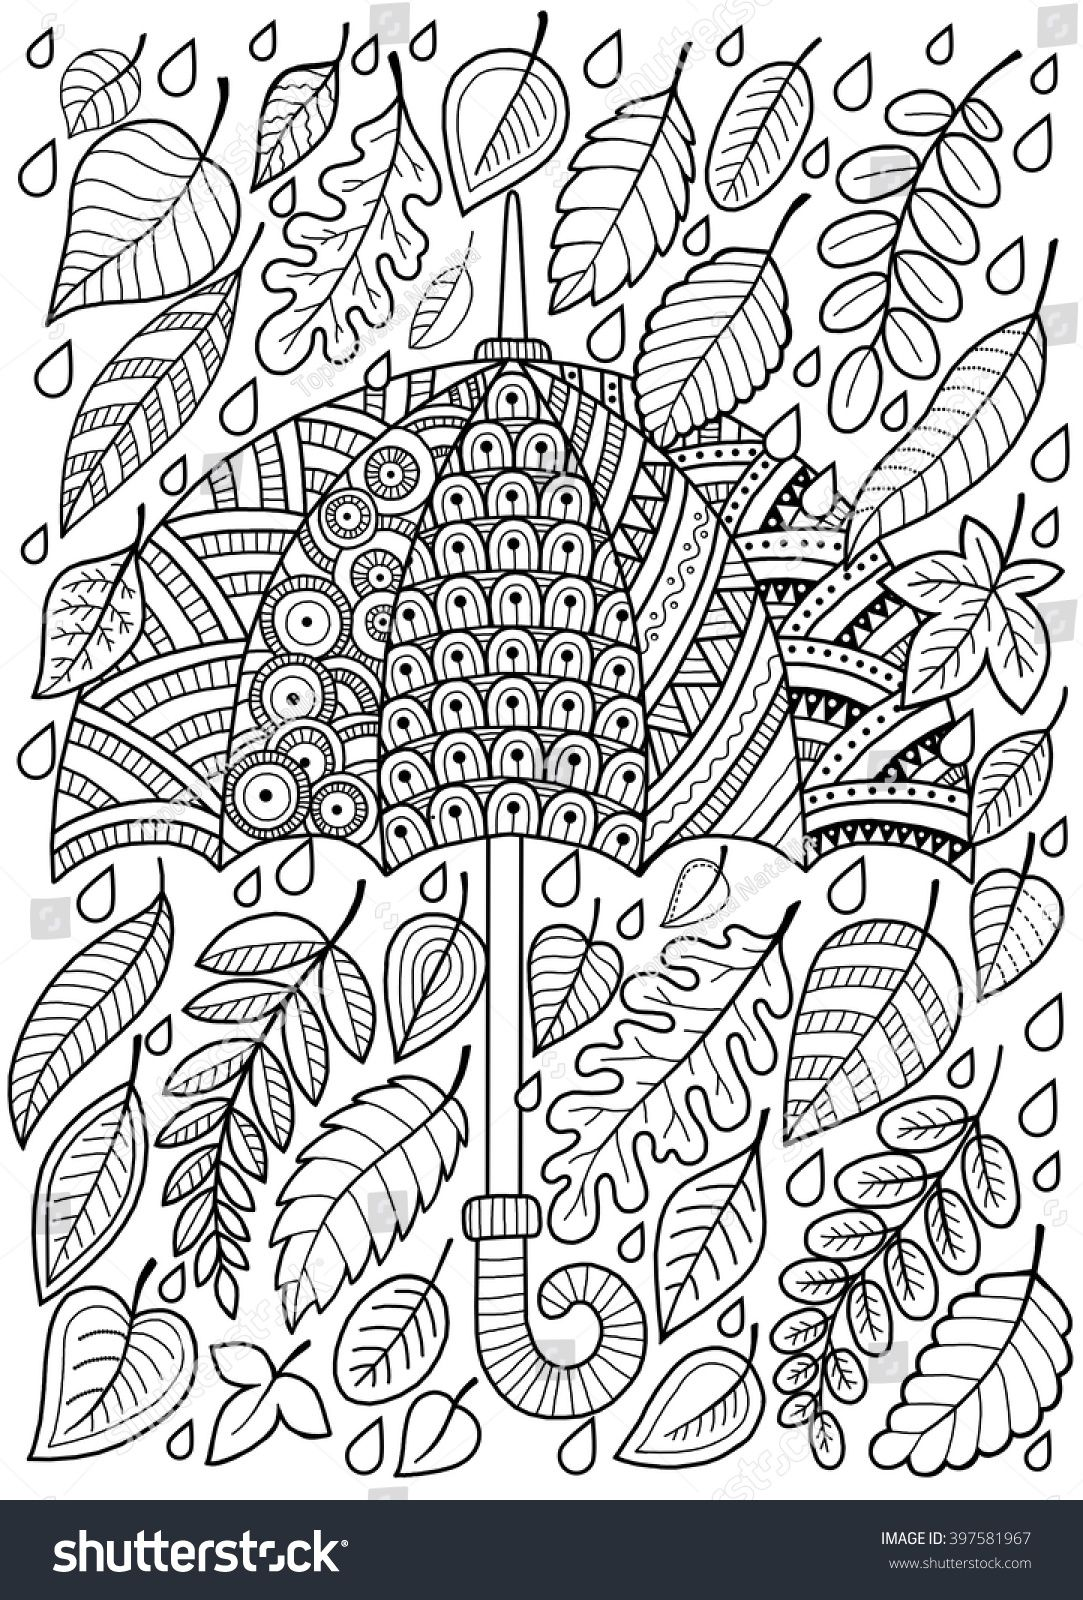 Hand Draw Doodle Coloring Page For Adult I Love Autumn